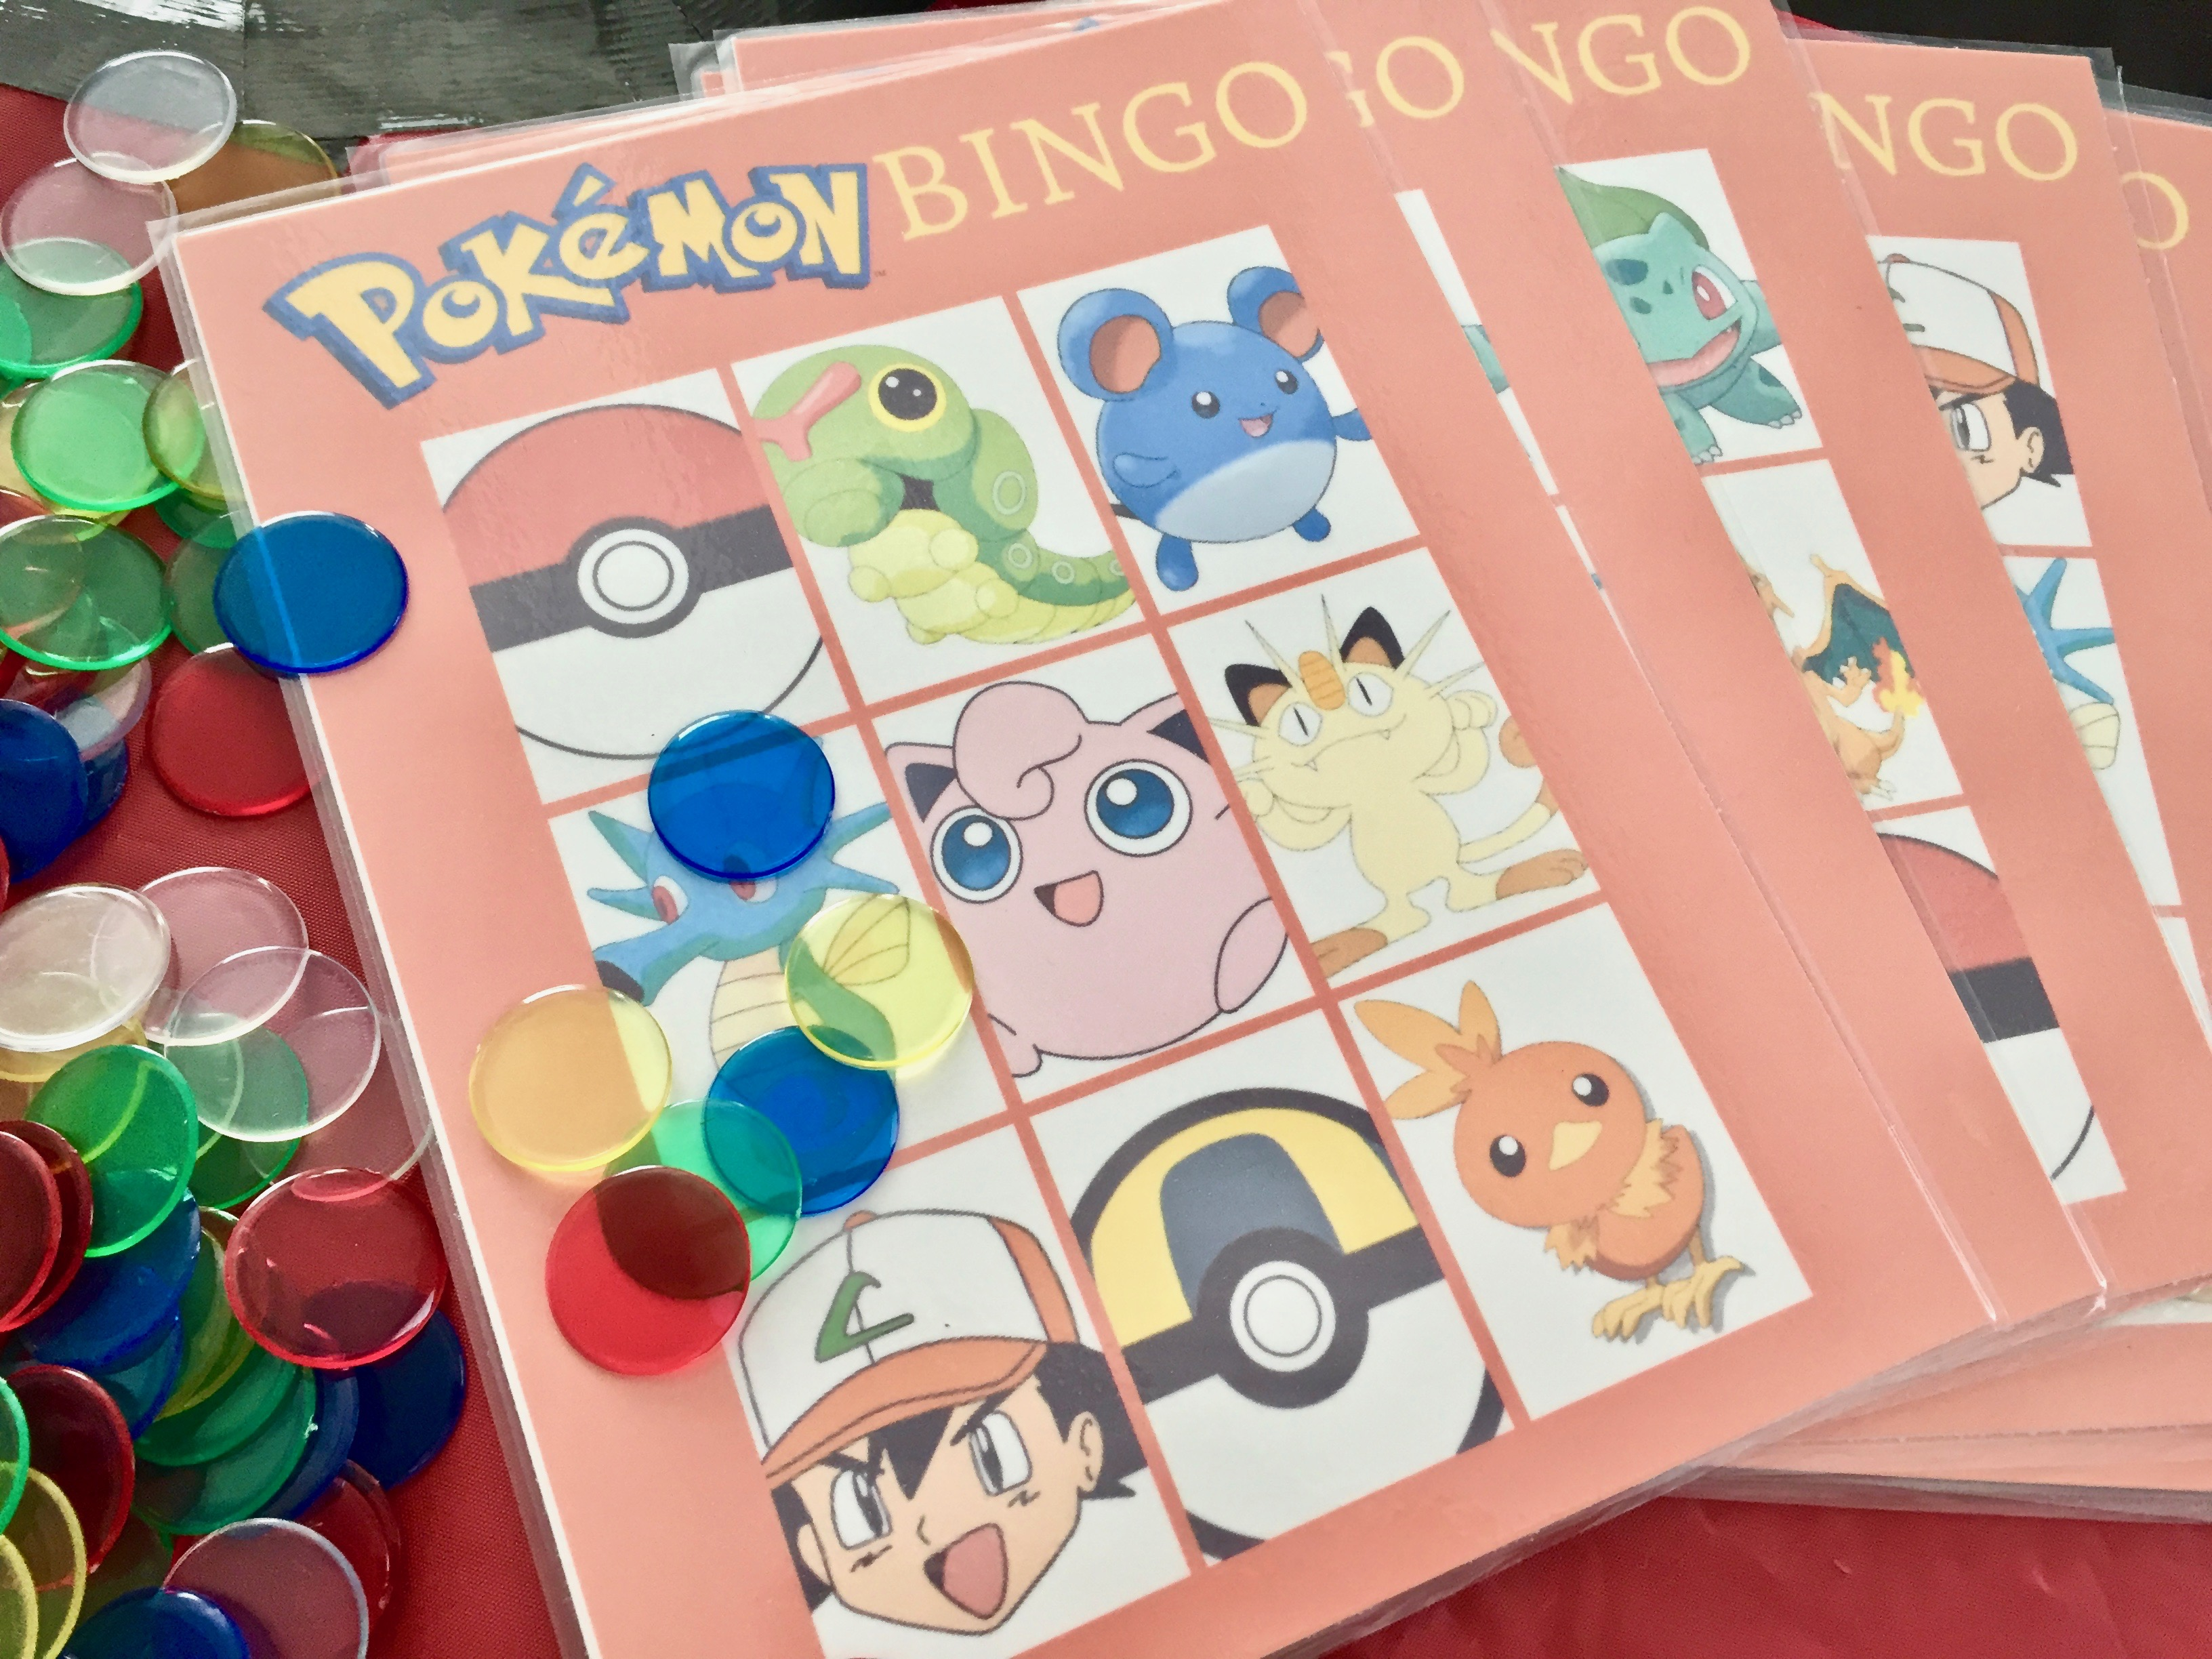 photograph relating to Printable Pokemon Party Games called Pokemon Birthday Get together Suggestions Printables - Frugal Florida Mother